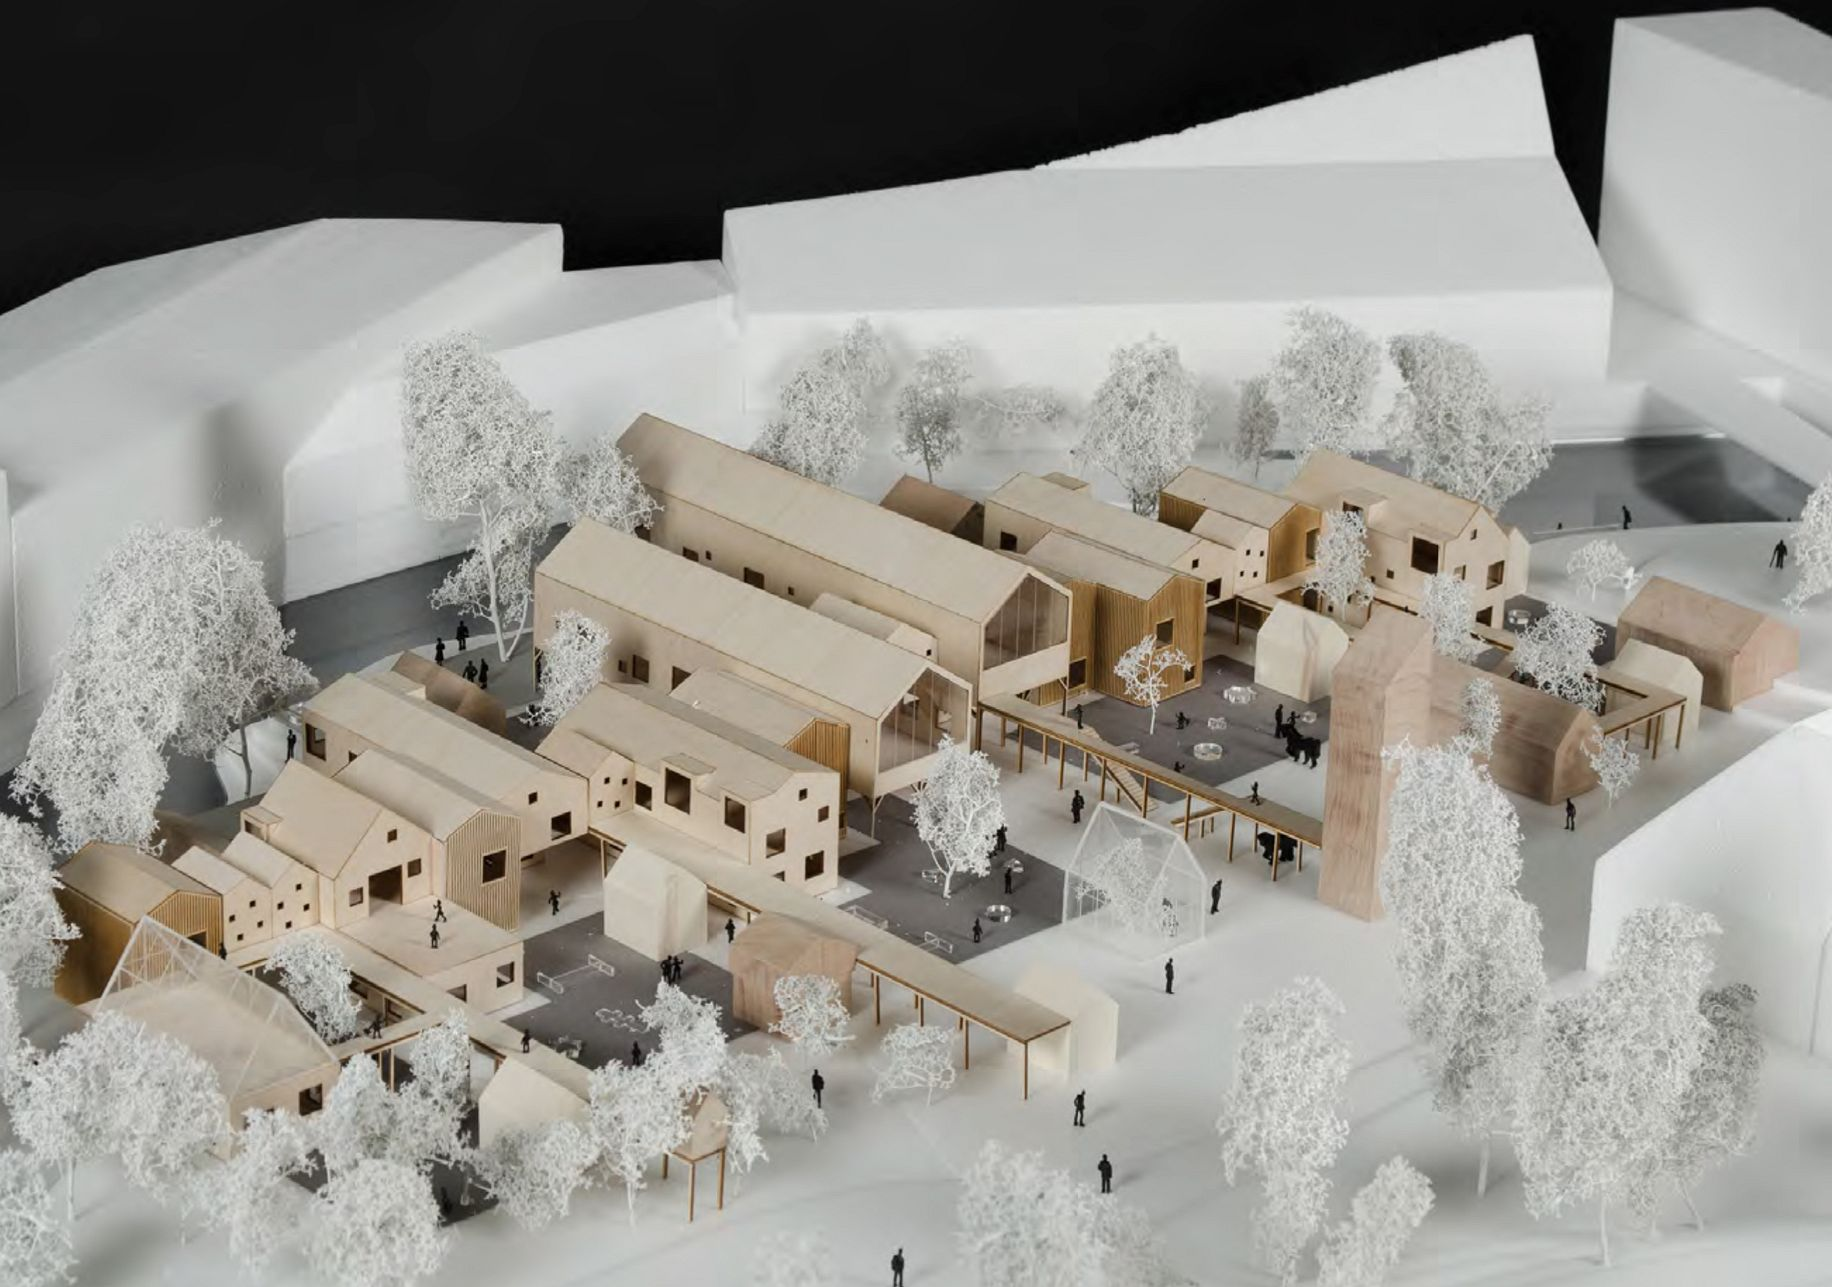 Kindergarten as urban intervention. Model from thesis project by Truls Schiefloe Sandbak and Jonas Østhagen Hamar, AHO 2015.